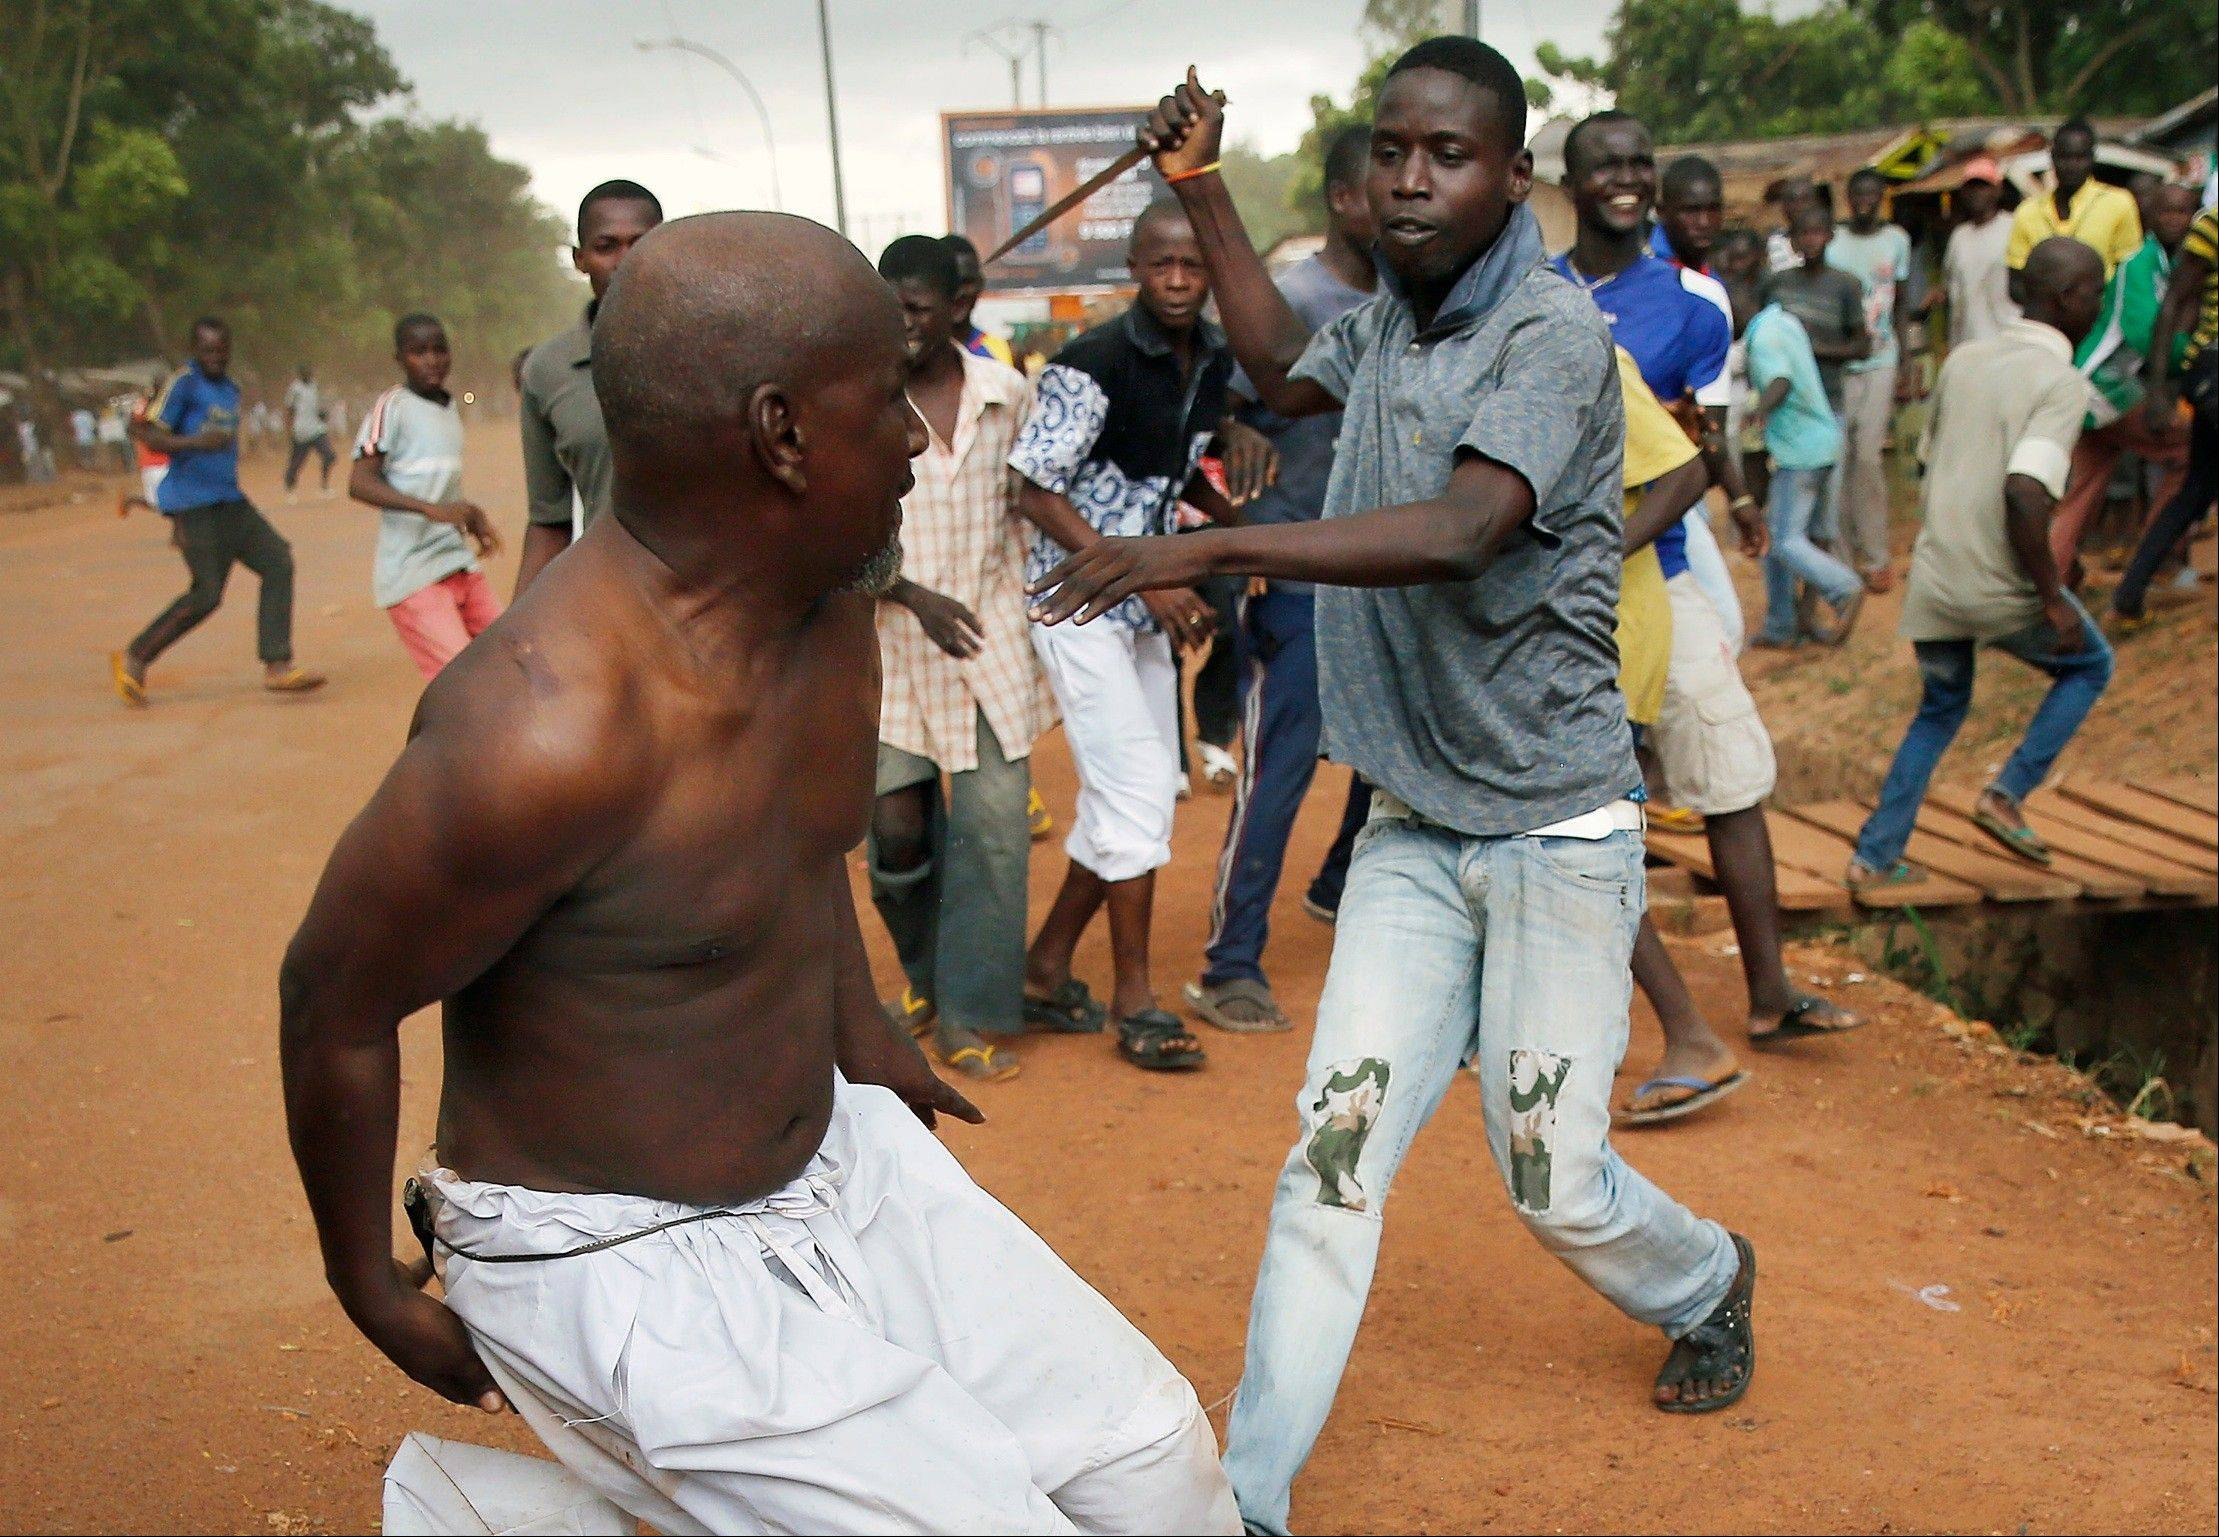 A Christian man chases a suspected Seleka officer in civilian clothes with a knife near the airport in Bangui, Central African Republic. Sub-Saharan Africa has seen a very violent start to 2014.